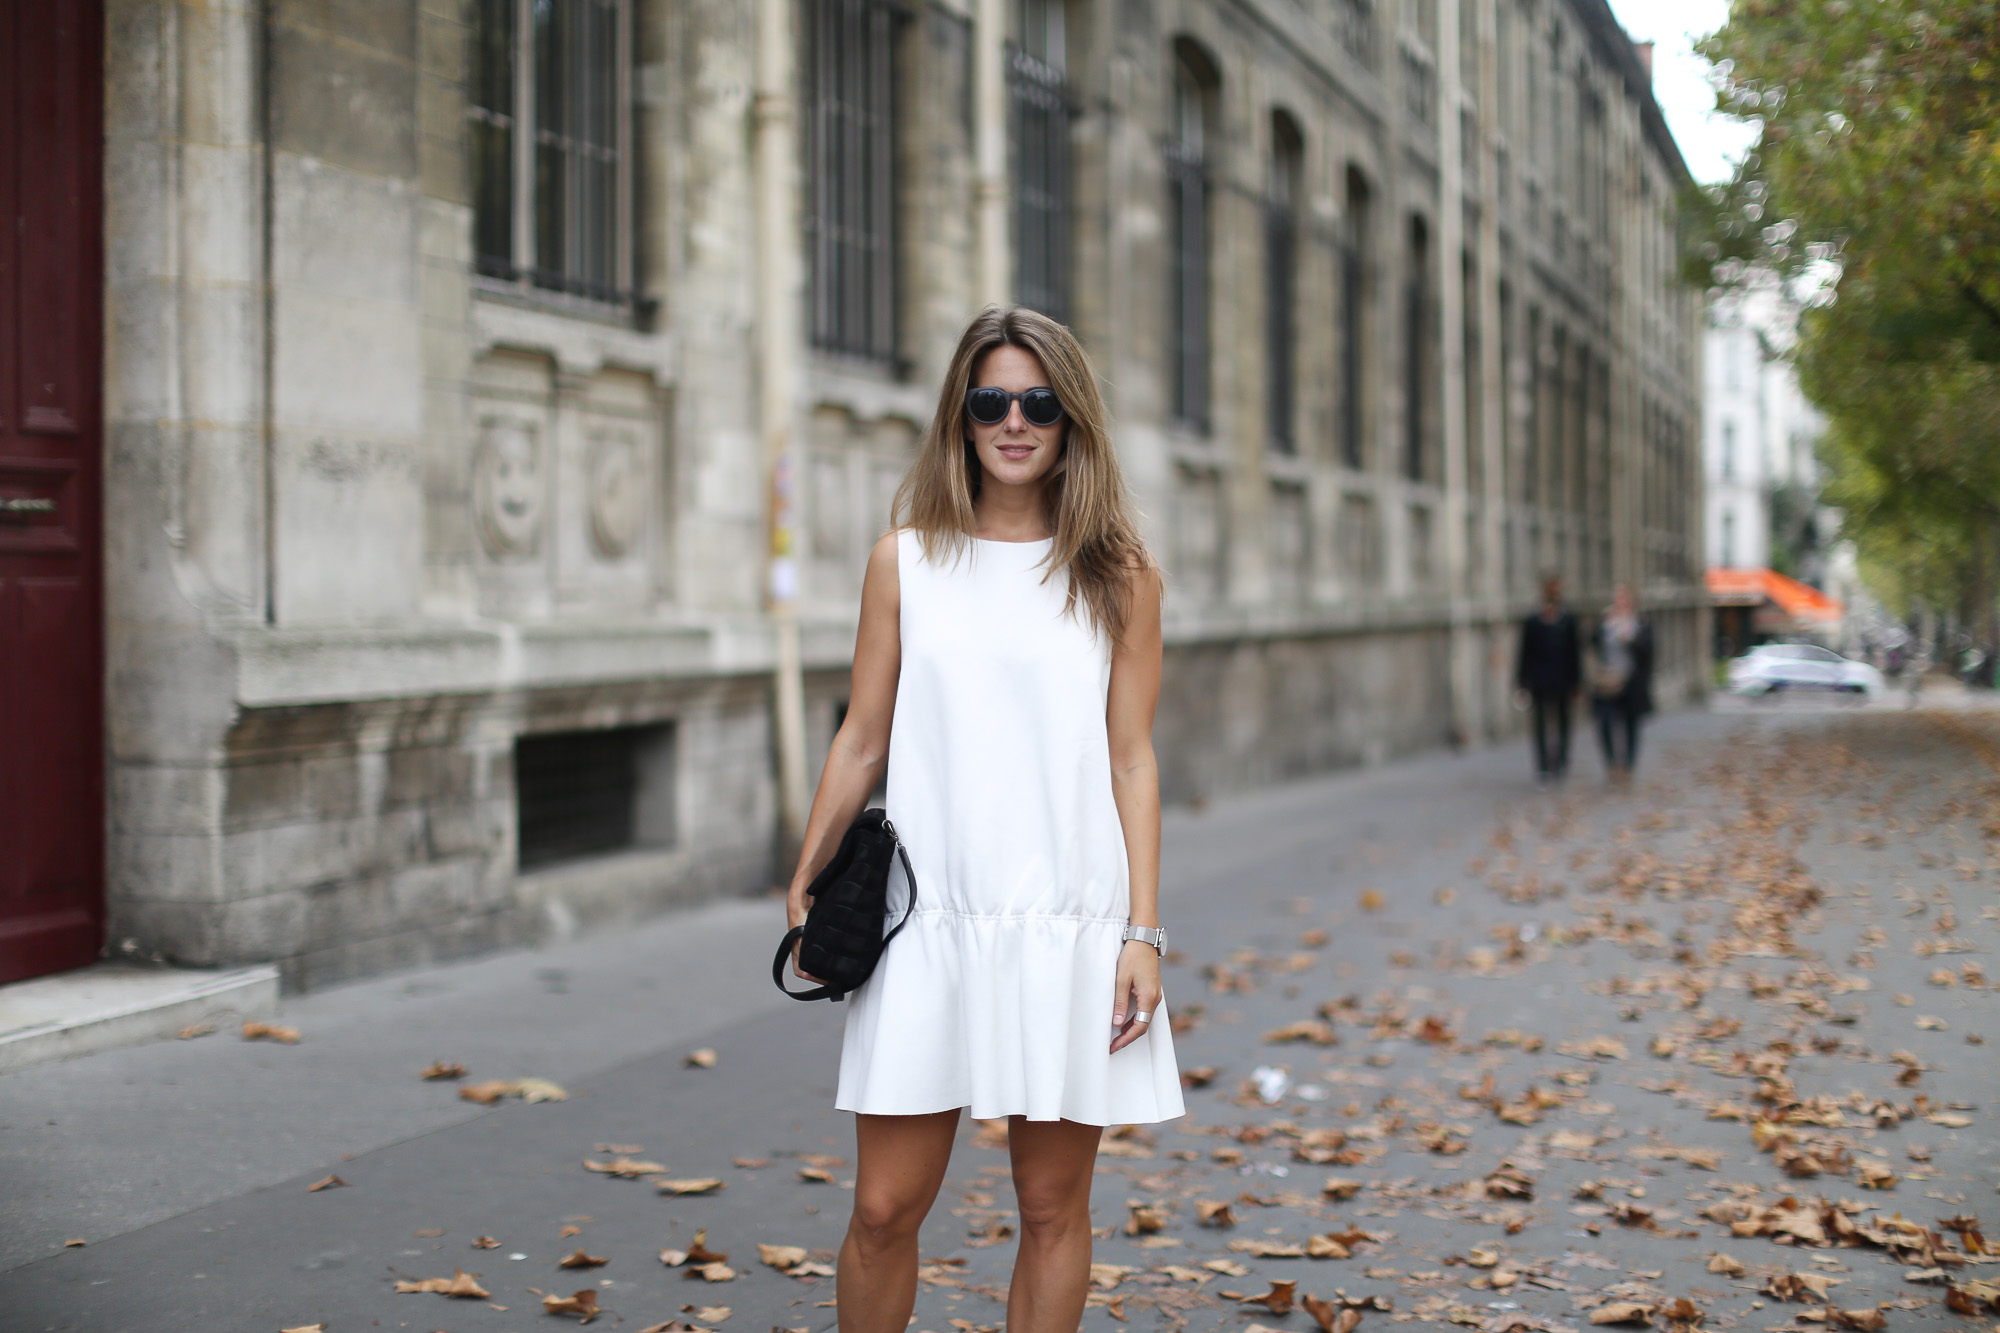 Clochet_paris_h&m_trend_white_neoprene_dress_adidas_stan_smith-1-11